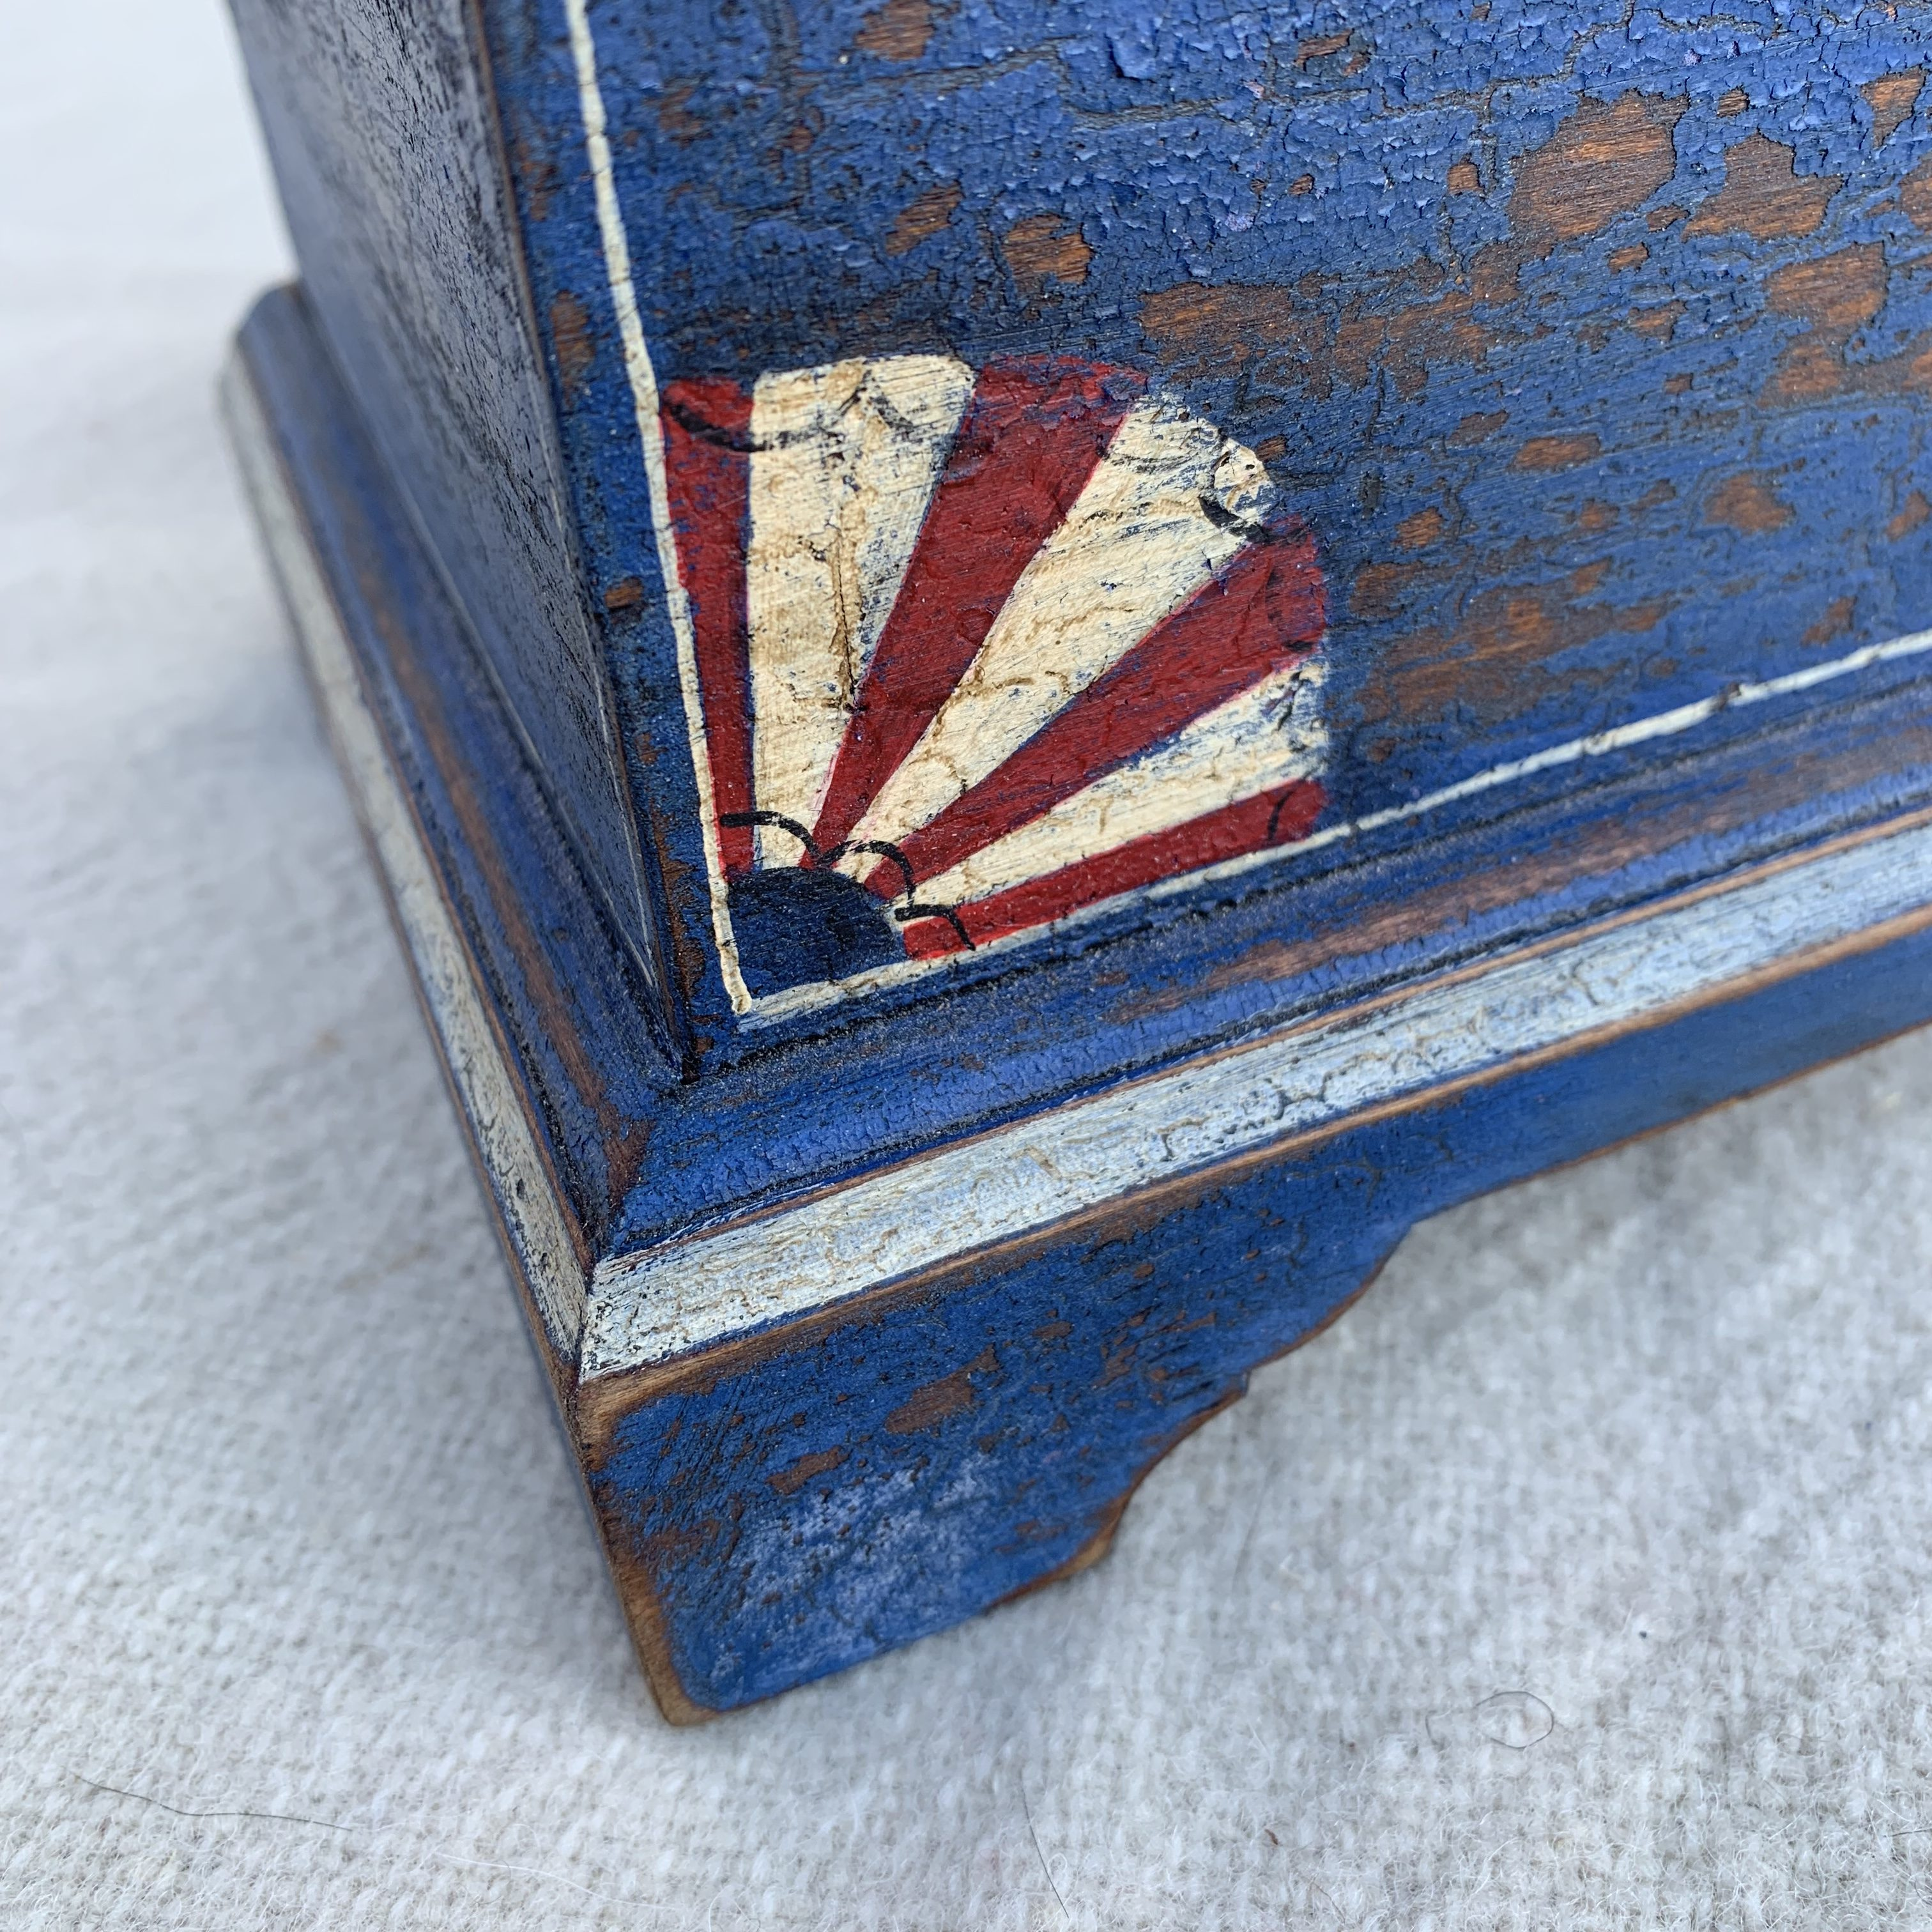 Painted box detail